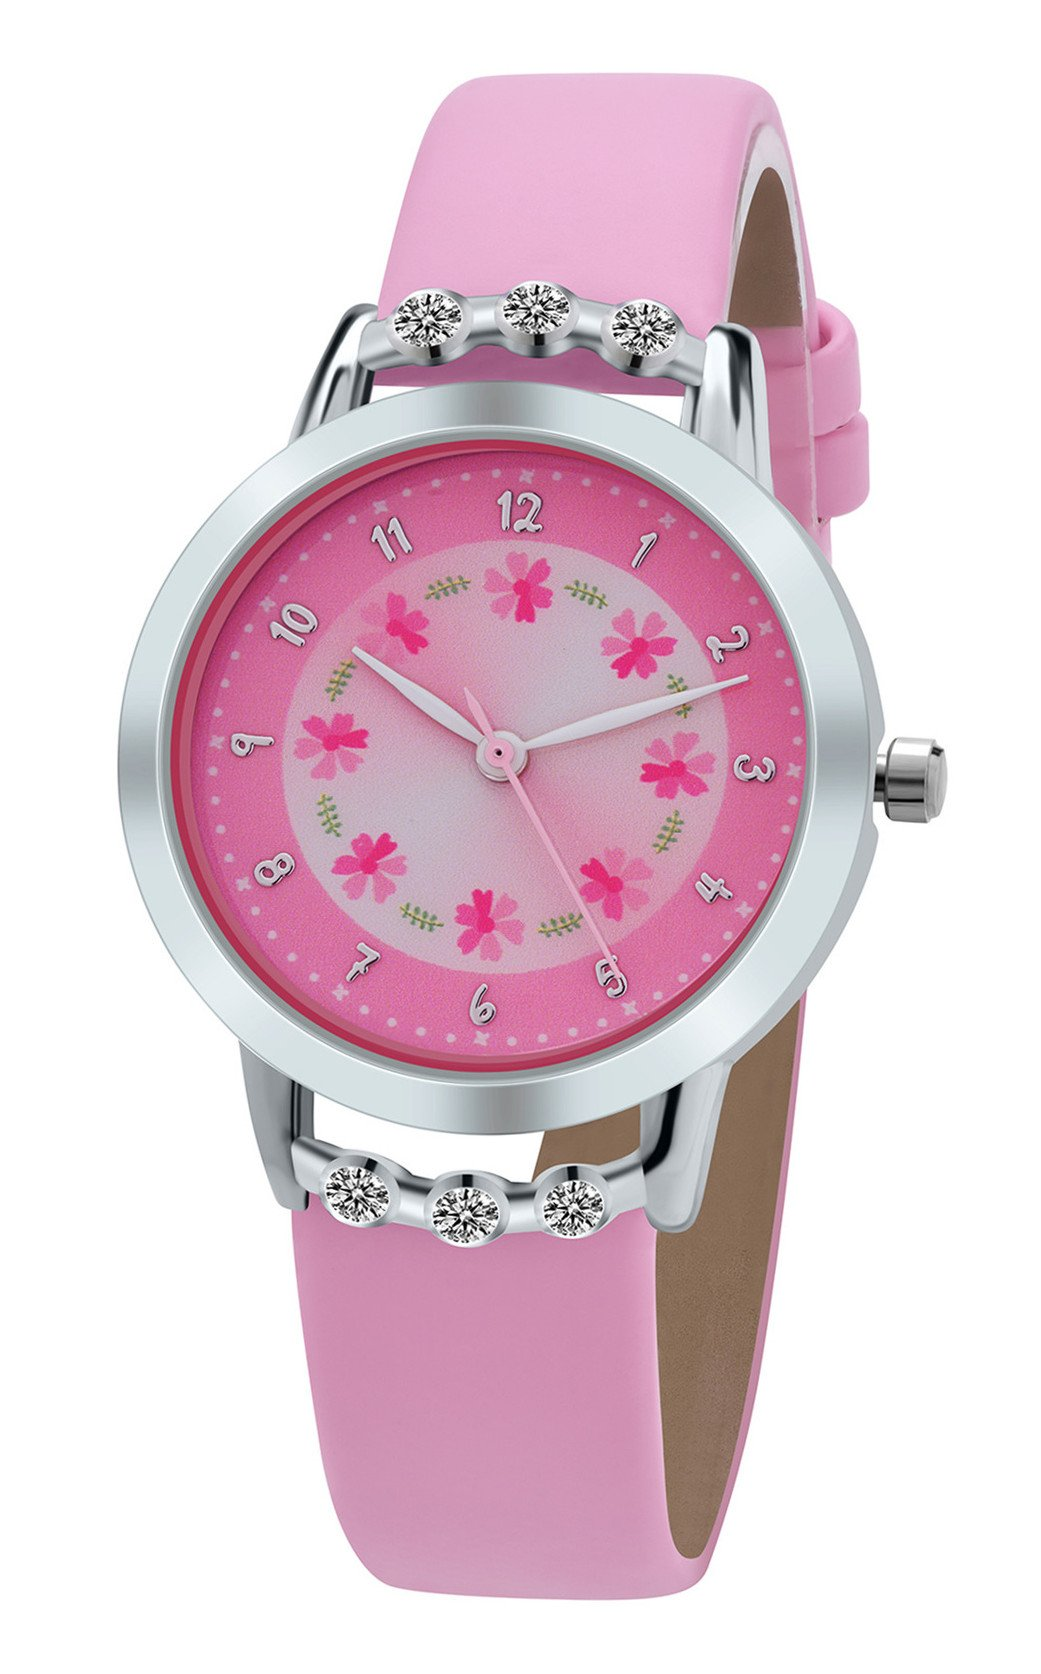 DOVODA Girl Watches Easy Reader Time Teacher Flowers Diamond Pink Leather Watch for Girls by DOVODA